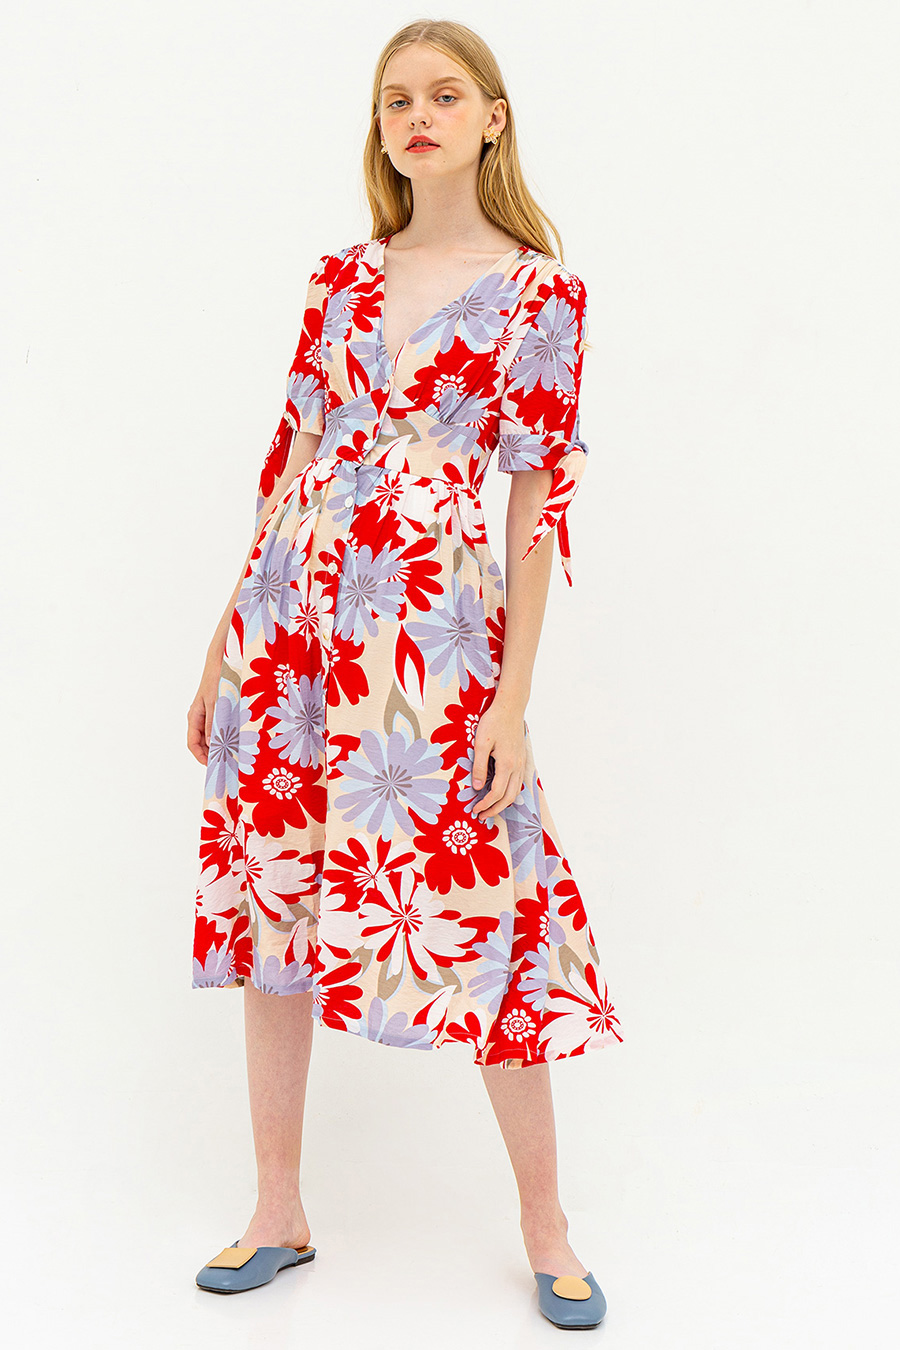 *RESTOCKED* INES DRESS - FLORINE POSSET [BY MODPARADE]